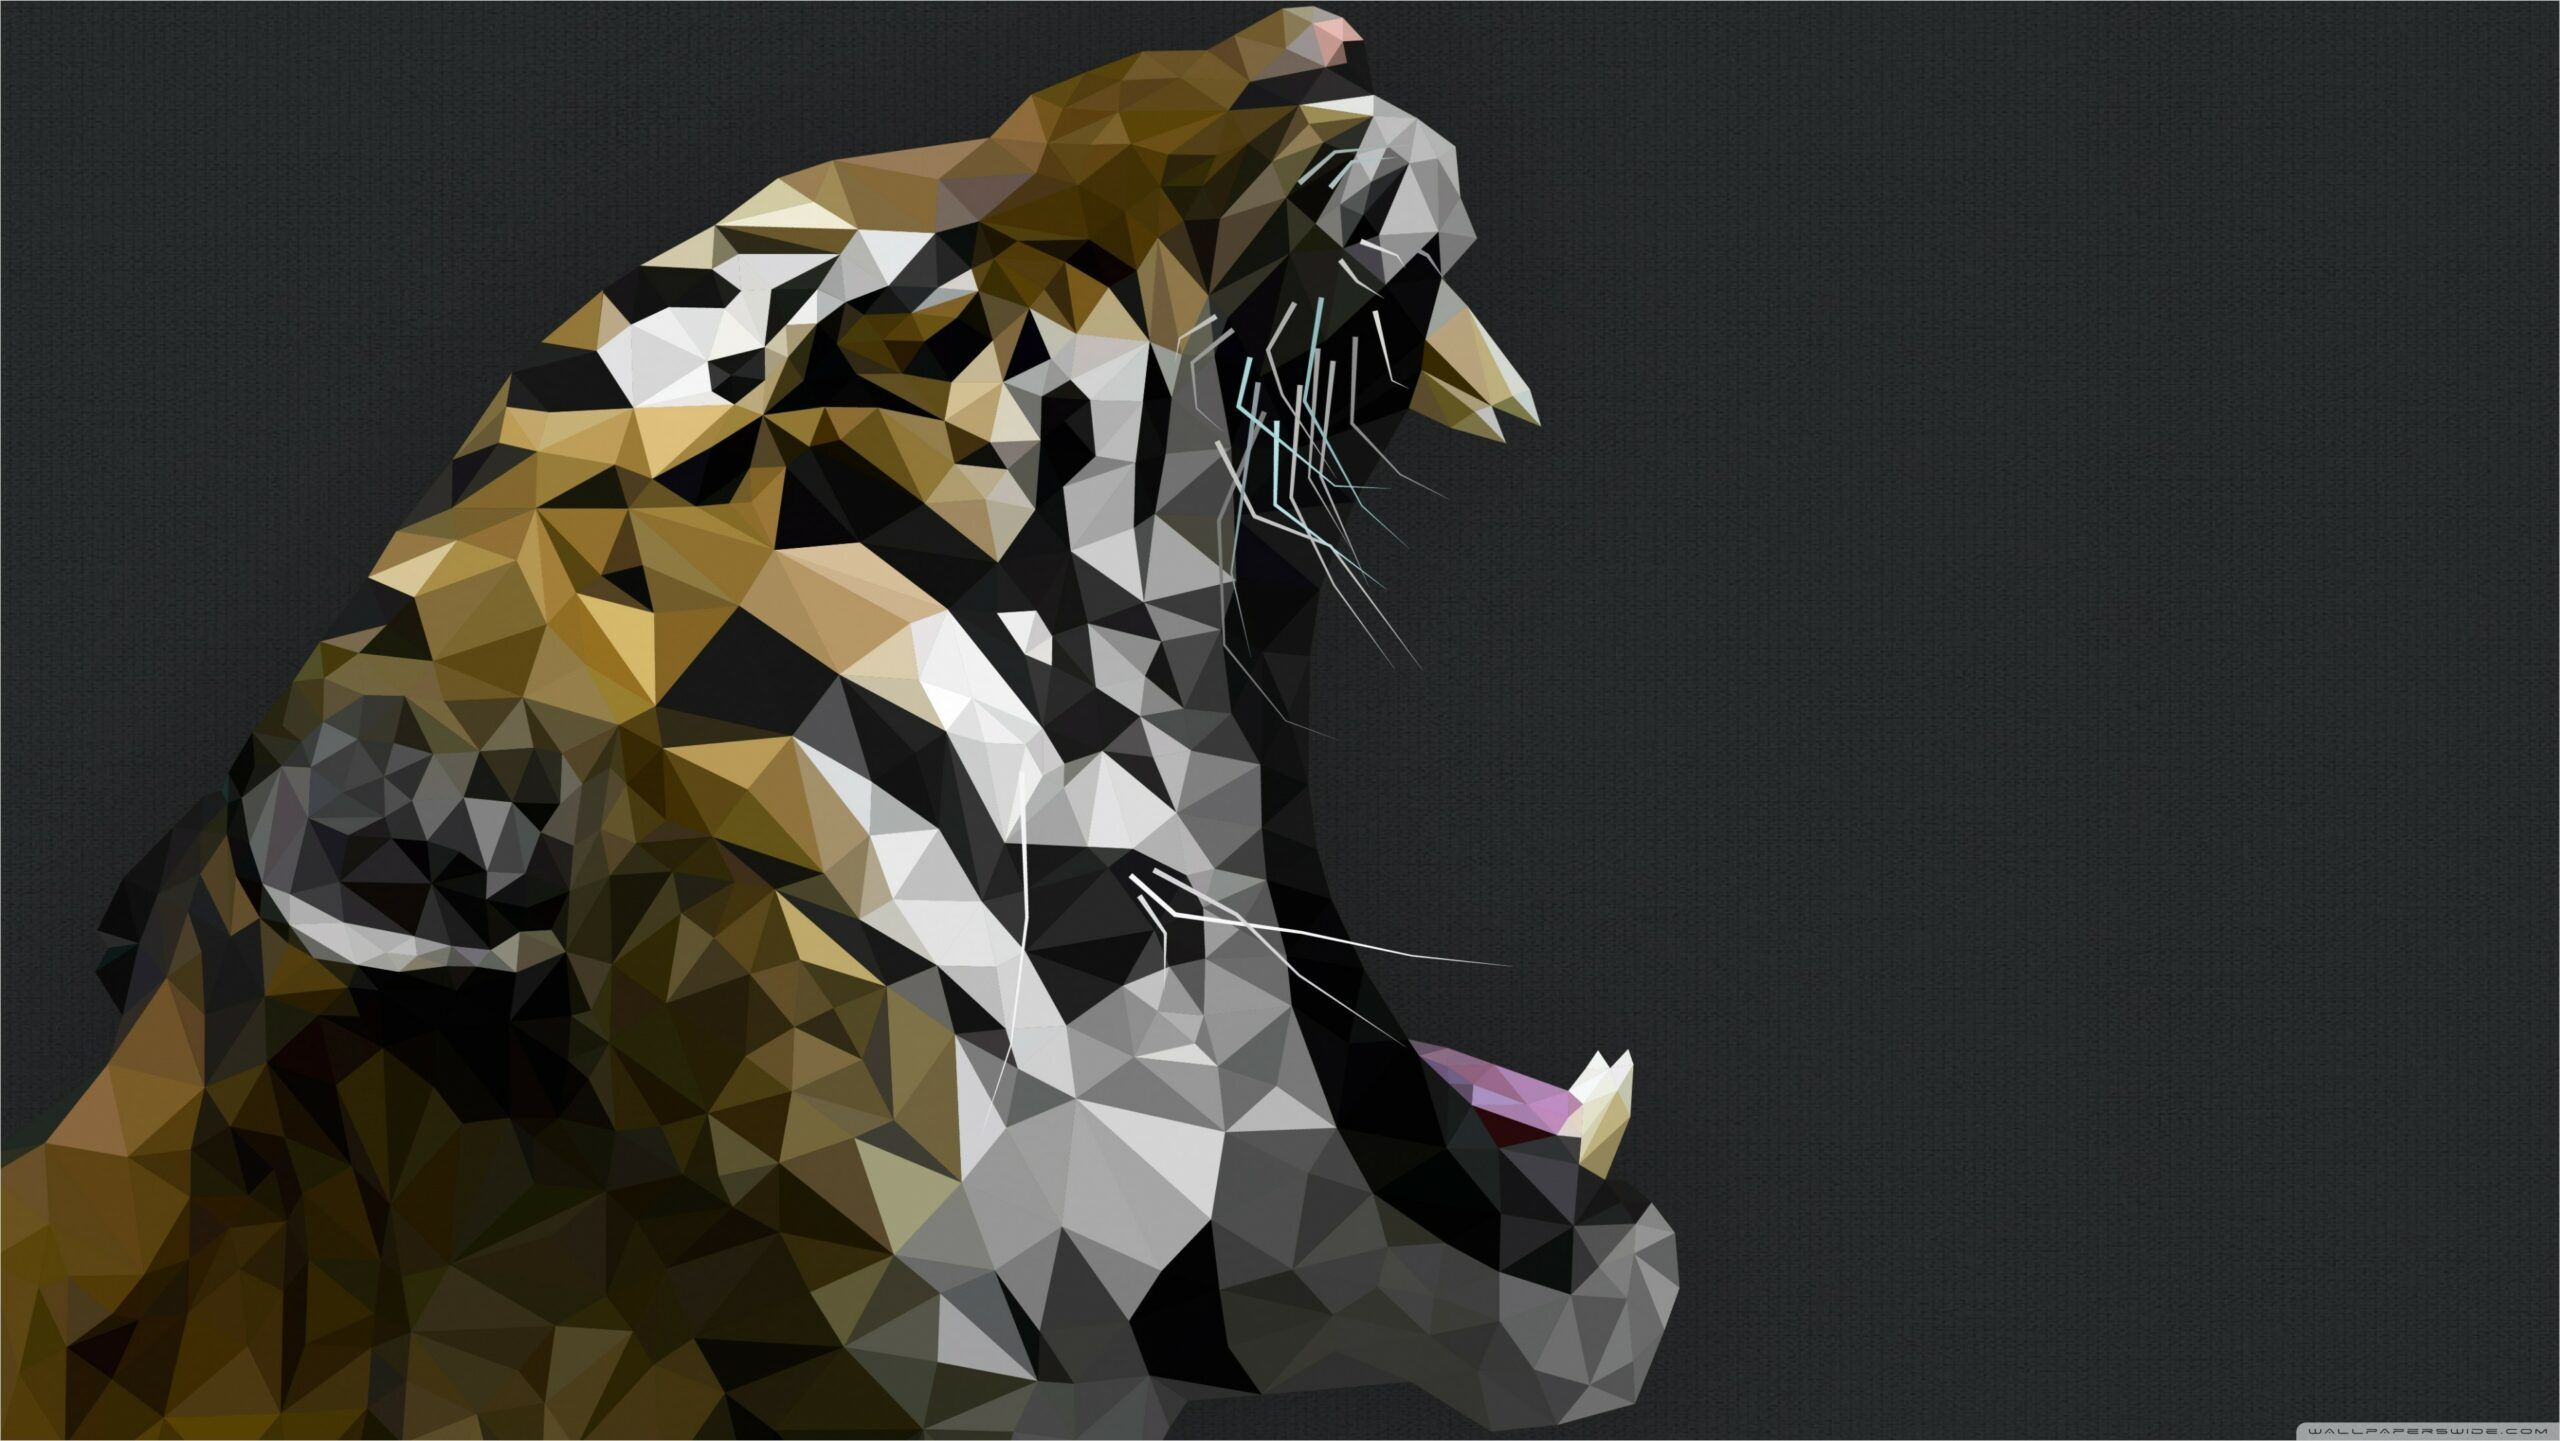 4k Uhd Polygon Wallpapers In 2020 Tiger Art Animal Wallpaper Art Wallpaper